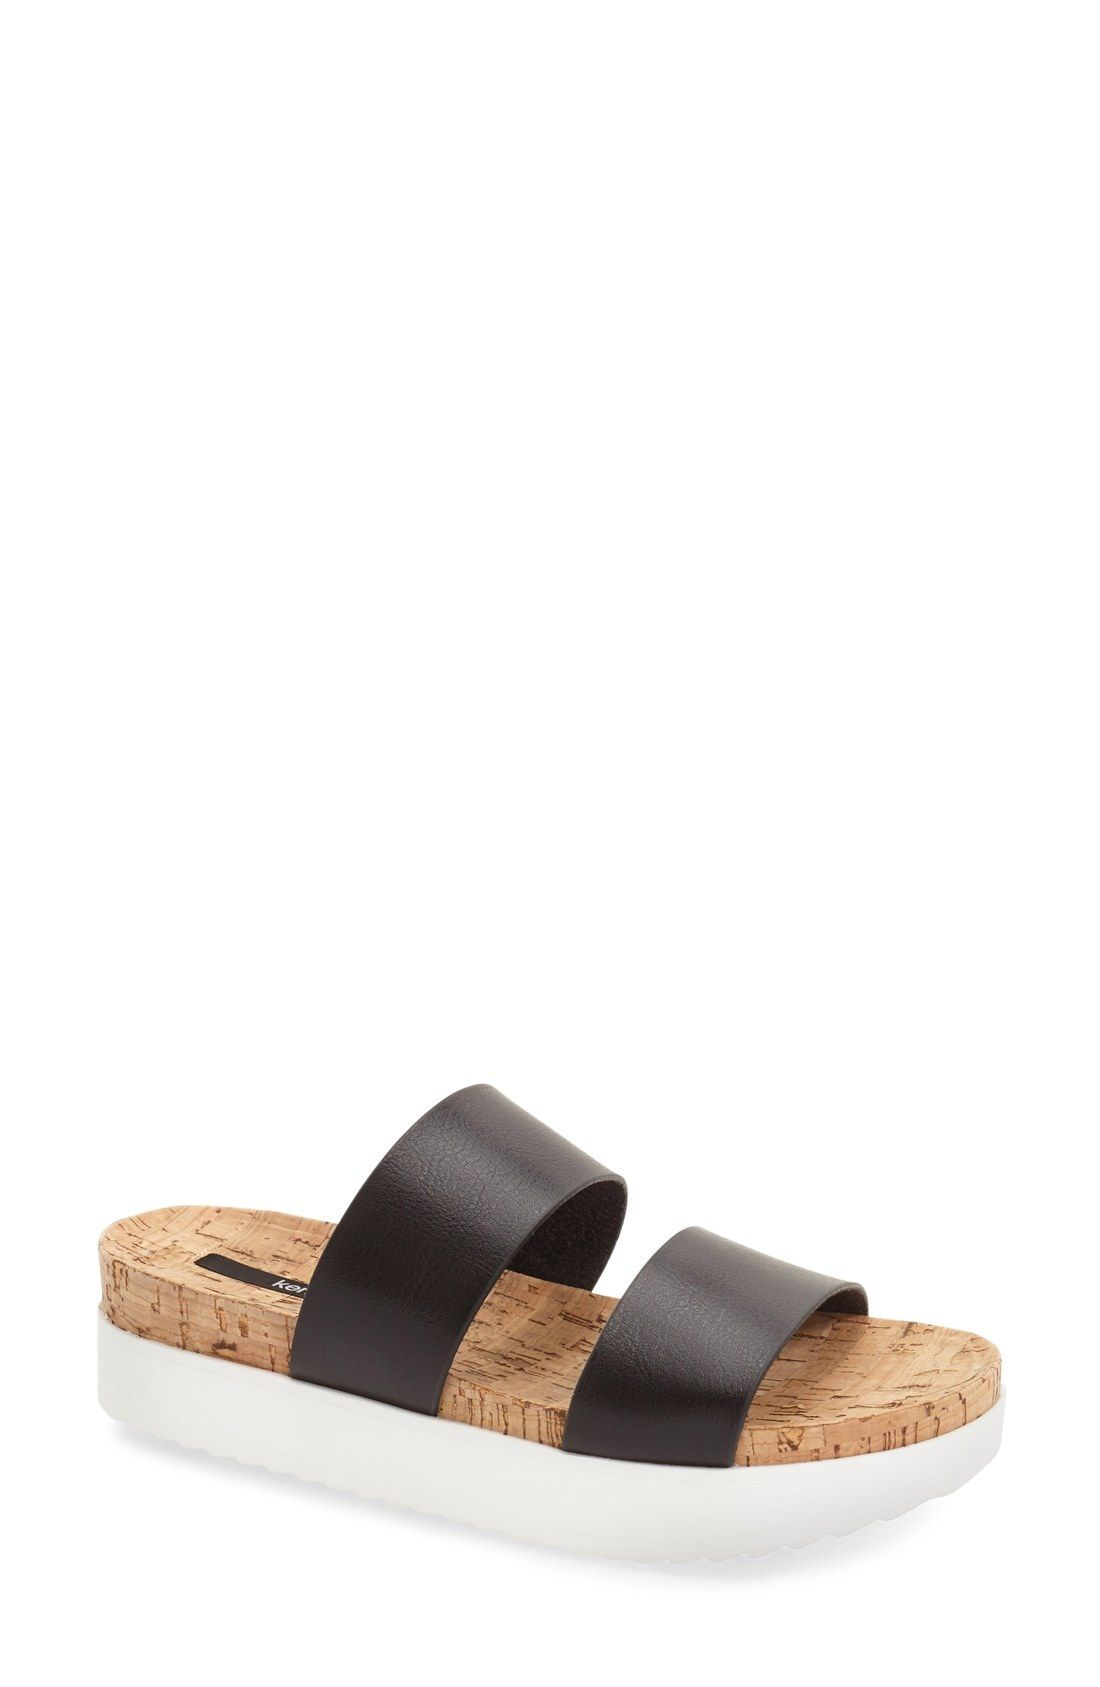 5ebc46d2faa kensie  Boston  Flatform Sandal (Women) available at  Nordstrom ...